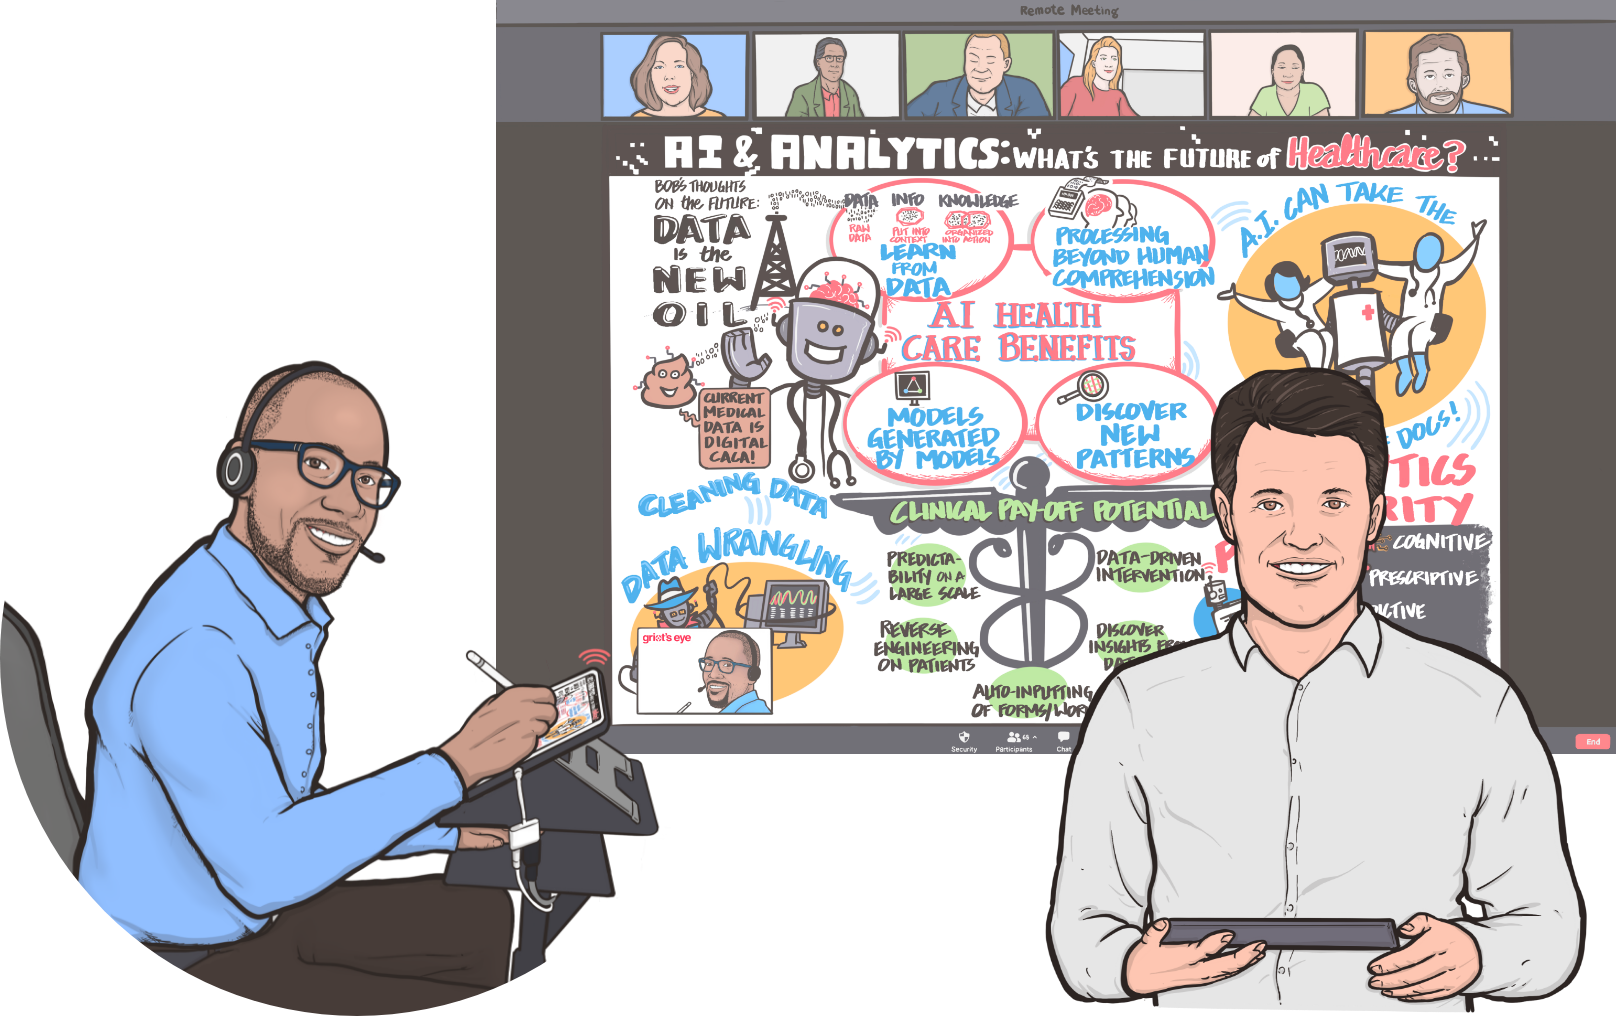 Illustrated Christopher Fuller, CEO and Chief Scribe of Griot's Eye providing graphic recording services